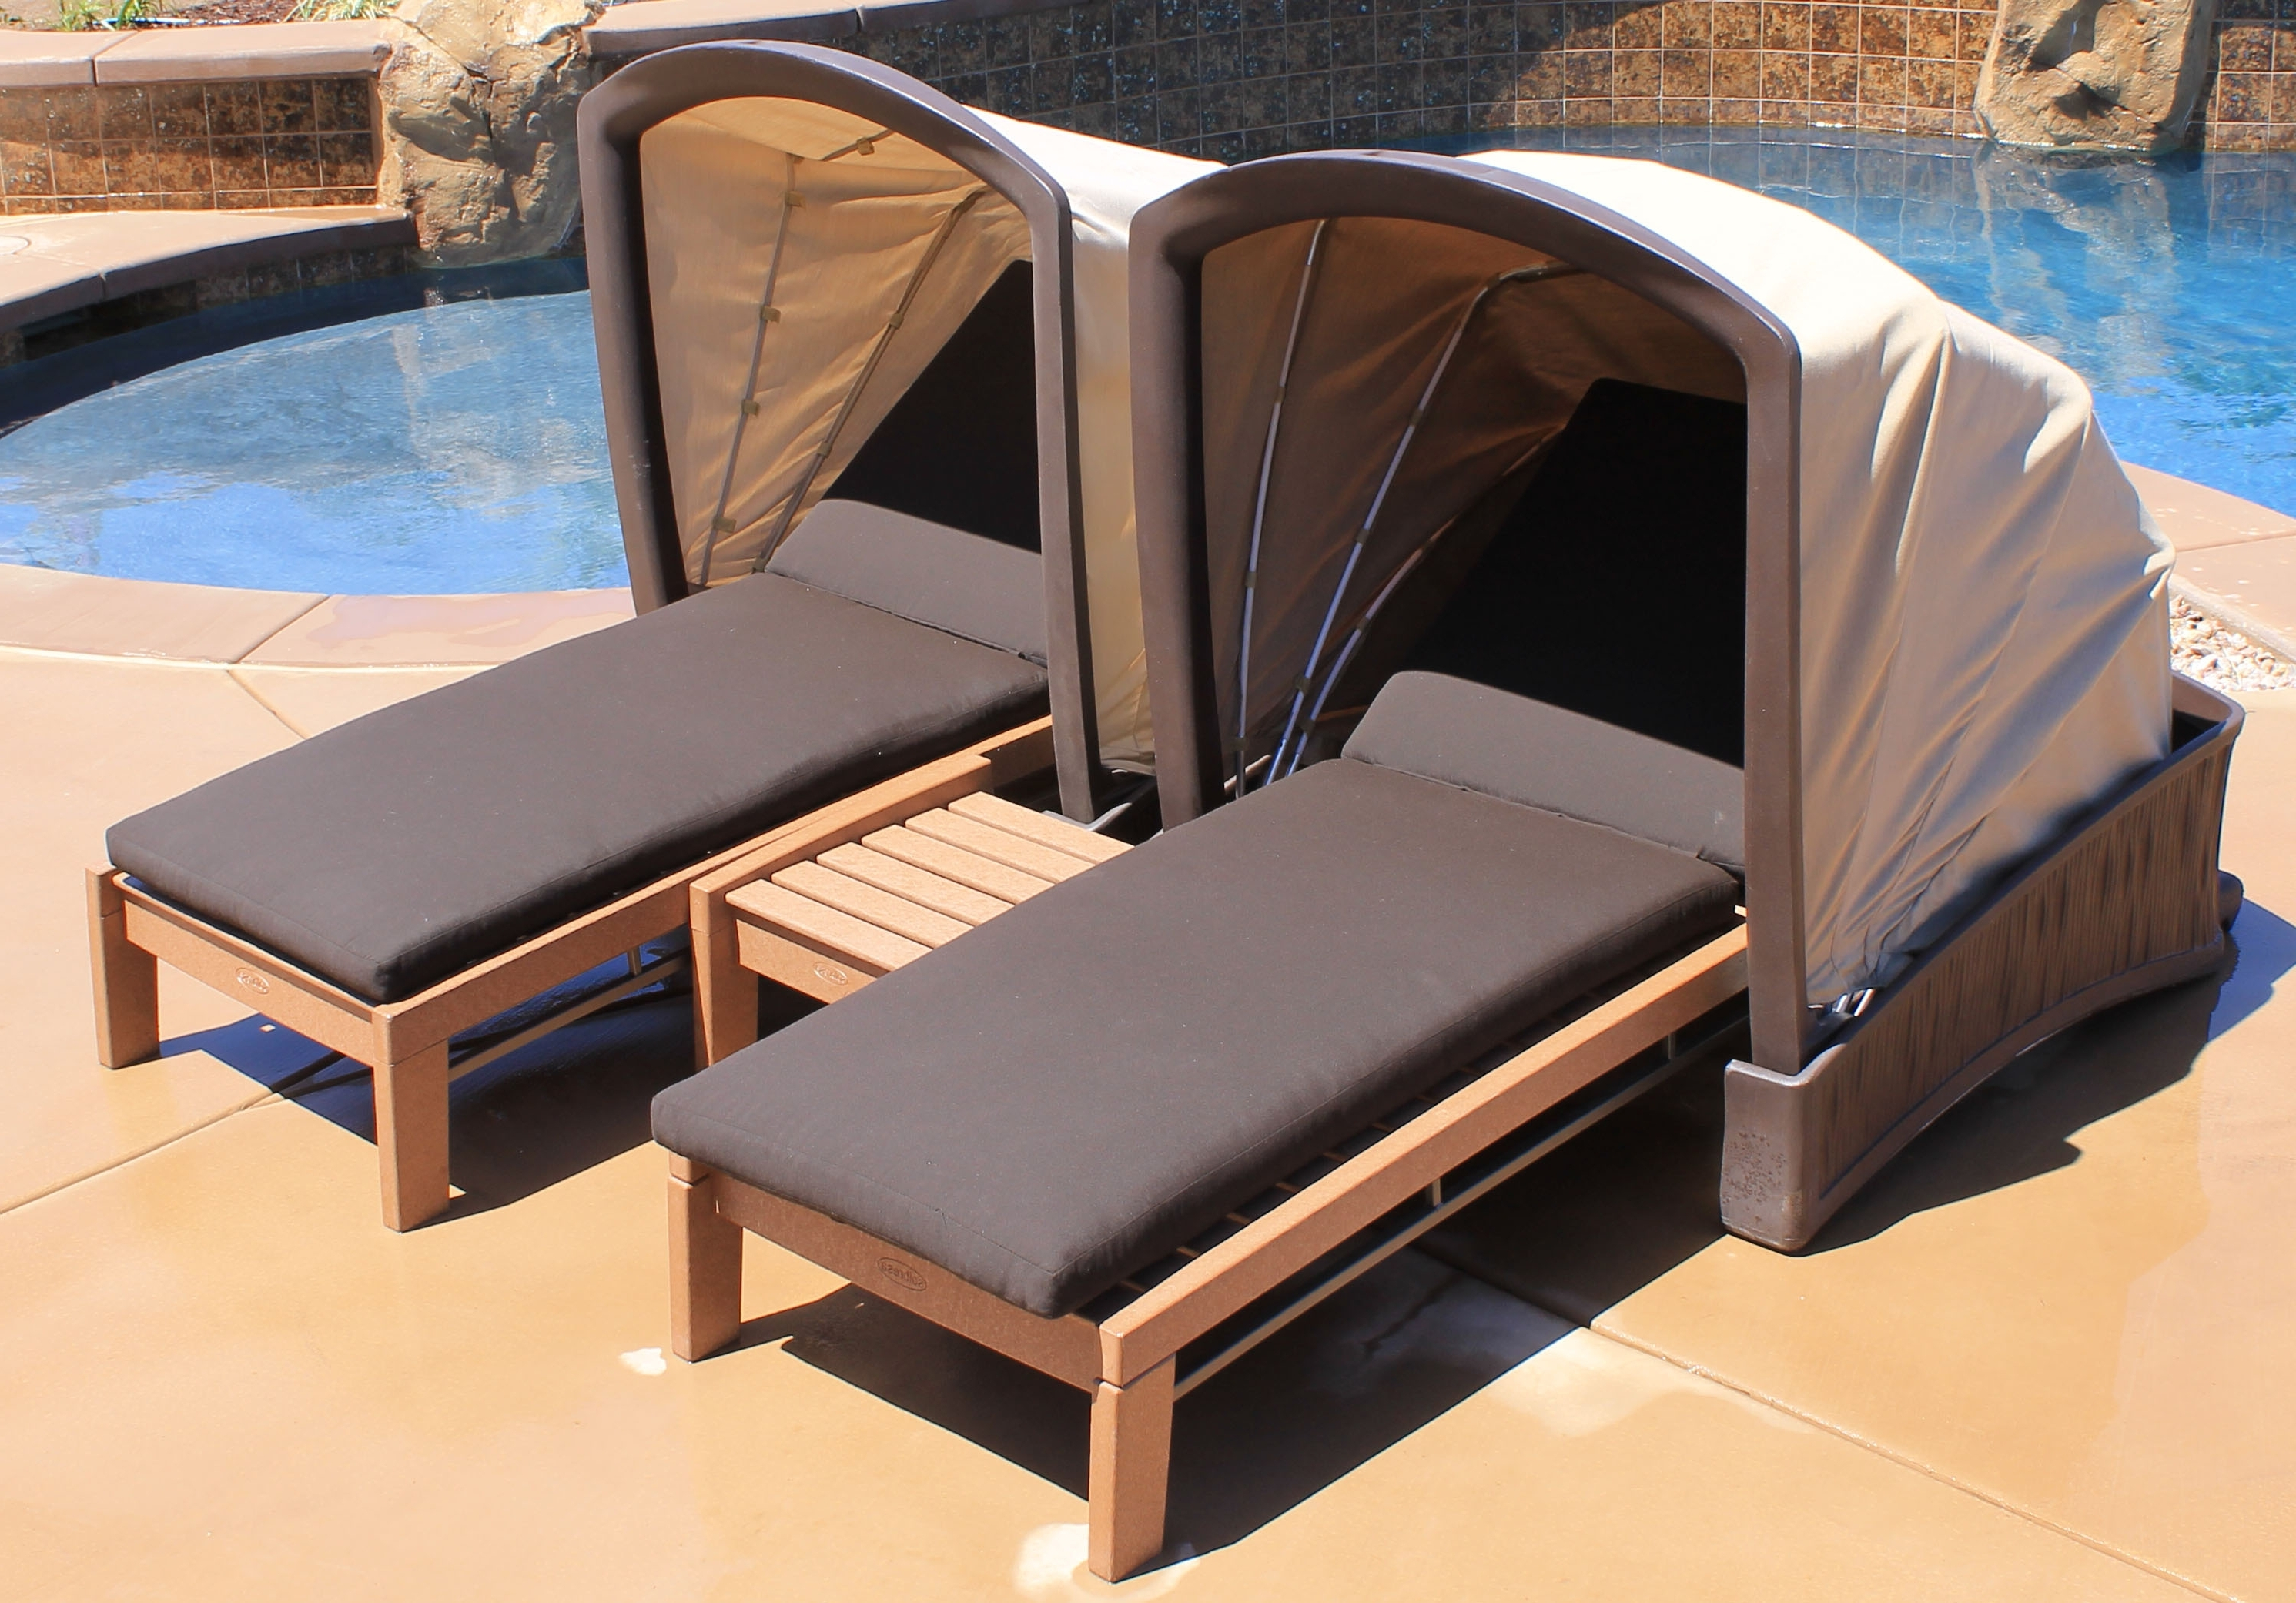 Outdoor Chaise Lounge Chairs With Canopy • Lounge Chairs Ideas Inside 2017 Chaise Lounge Chair With Canopy (View 1 of 15)